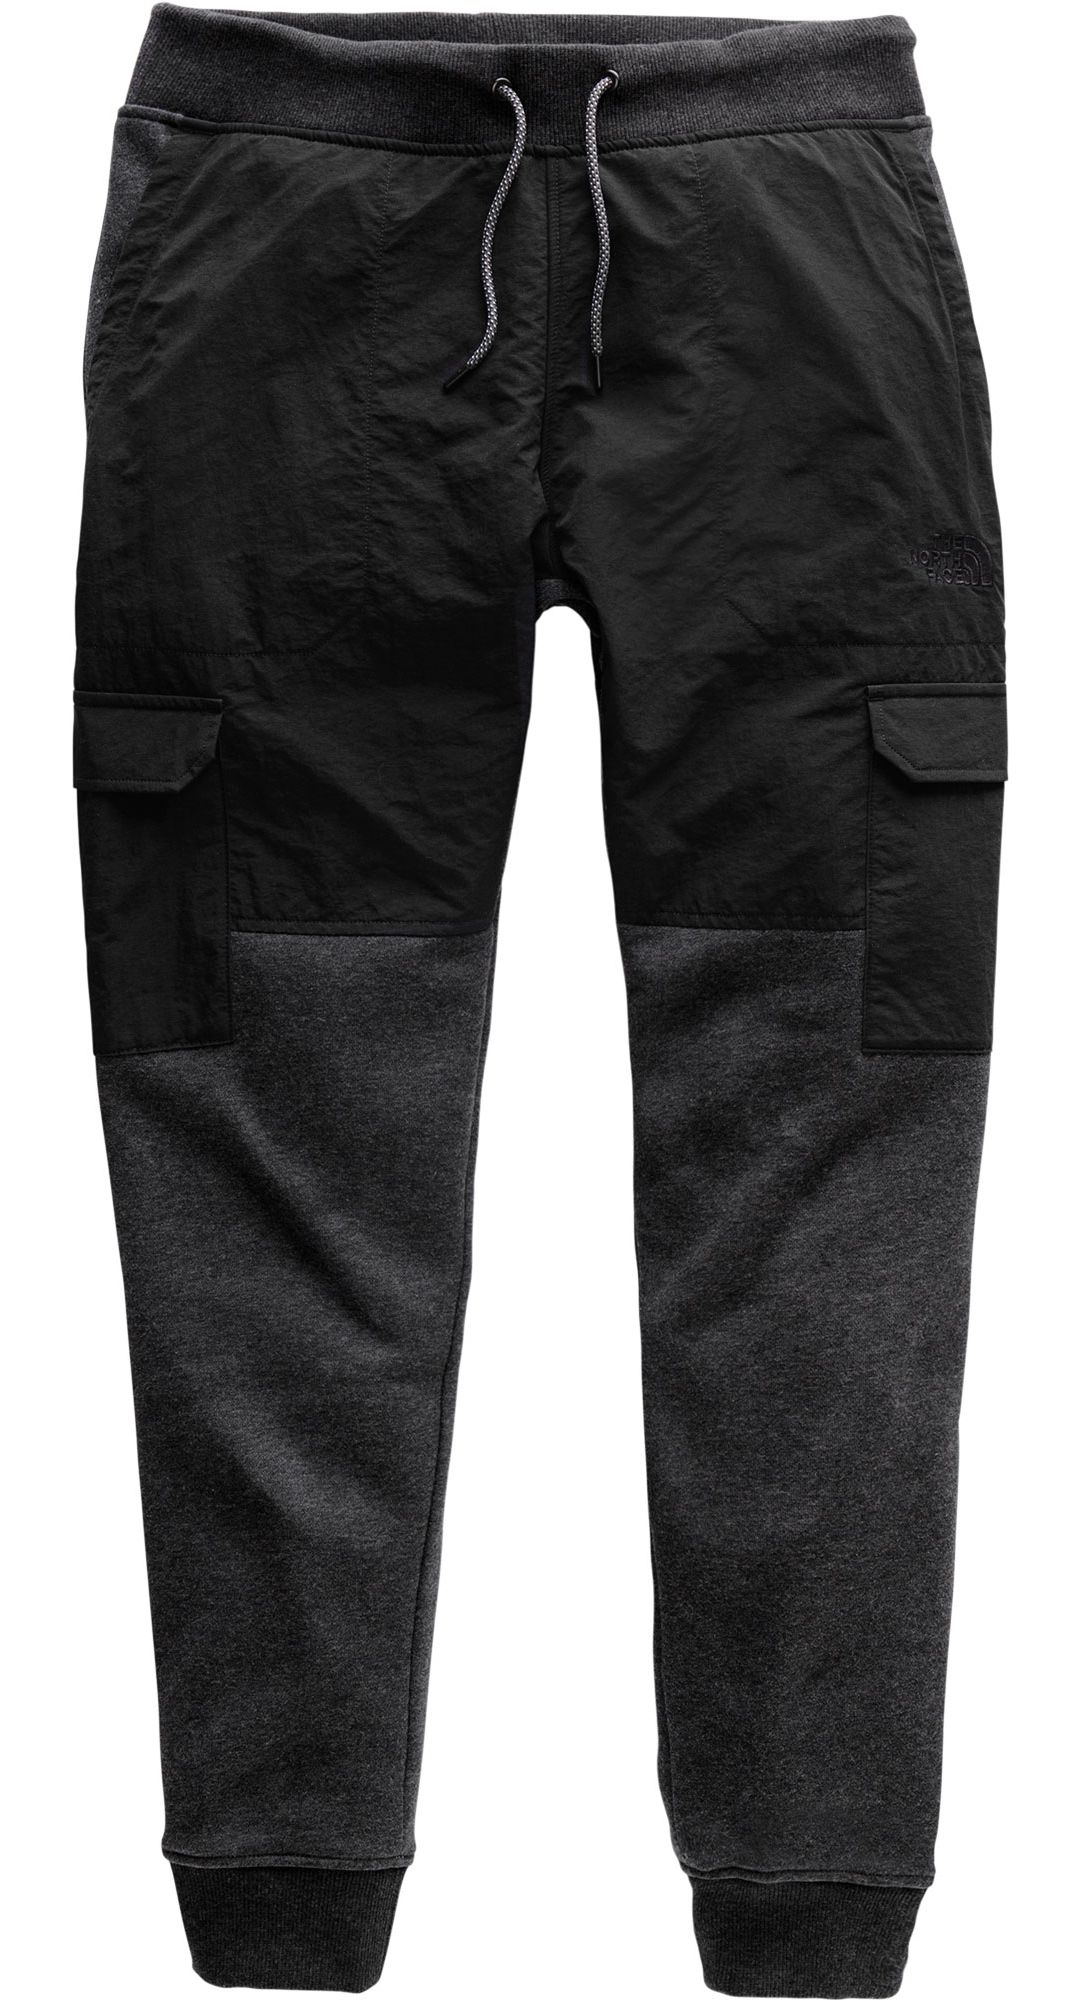 purchase original info for hot-selling discount The North Face Men's Alphabet City Fleece Cargo Pants